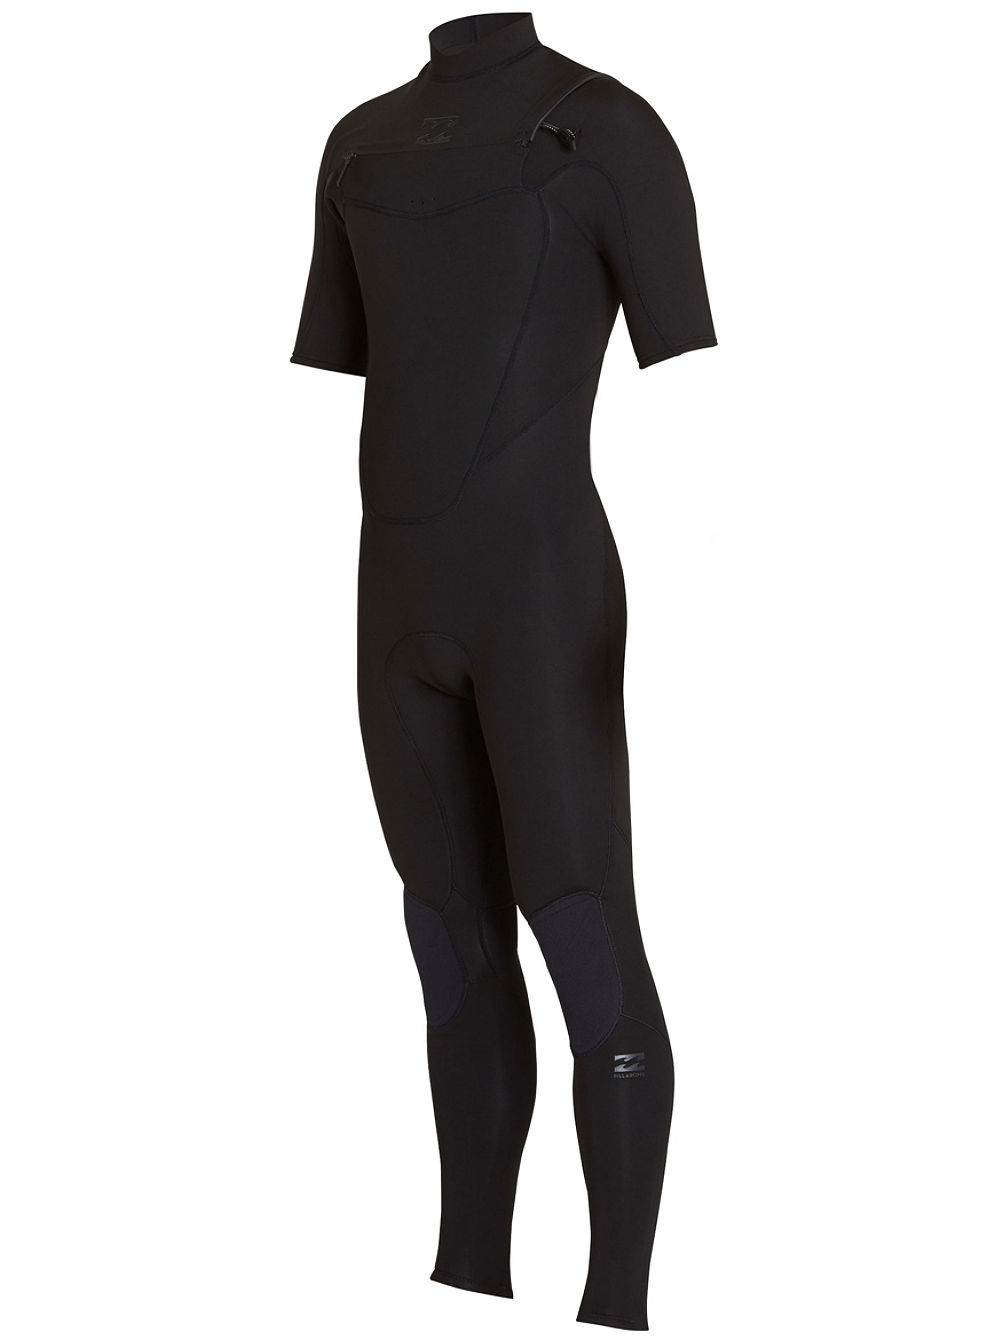 2/2 Absolute Chest Zip Wetsuit